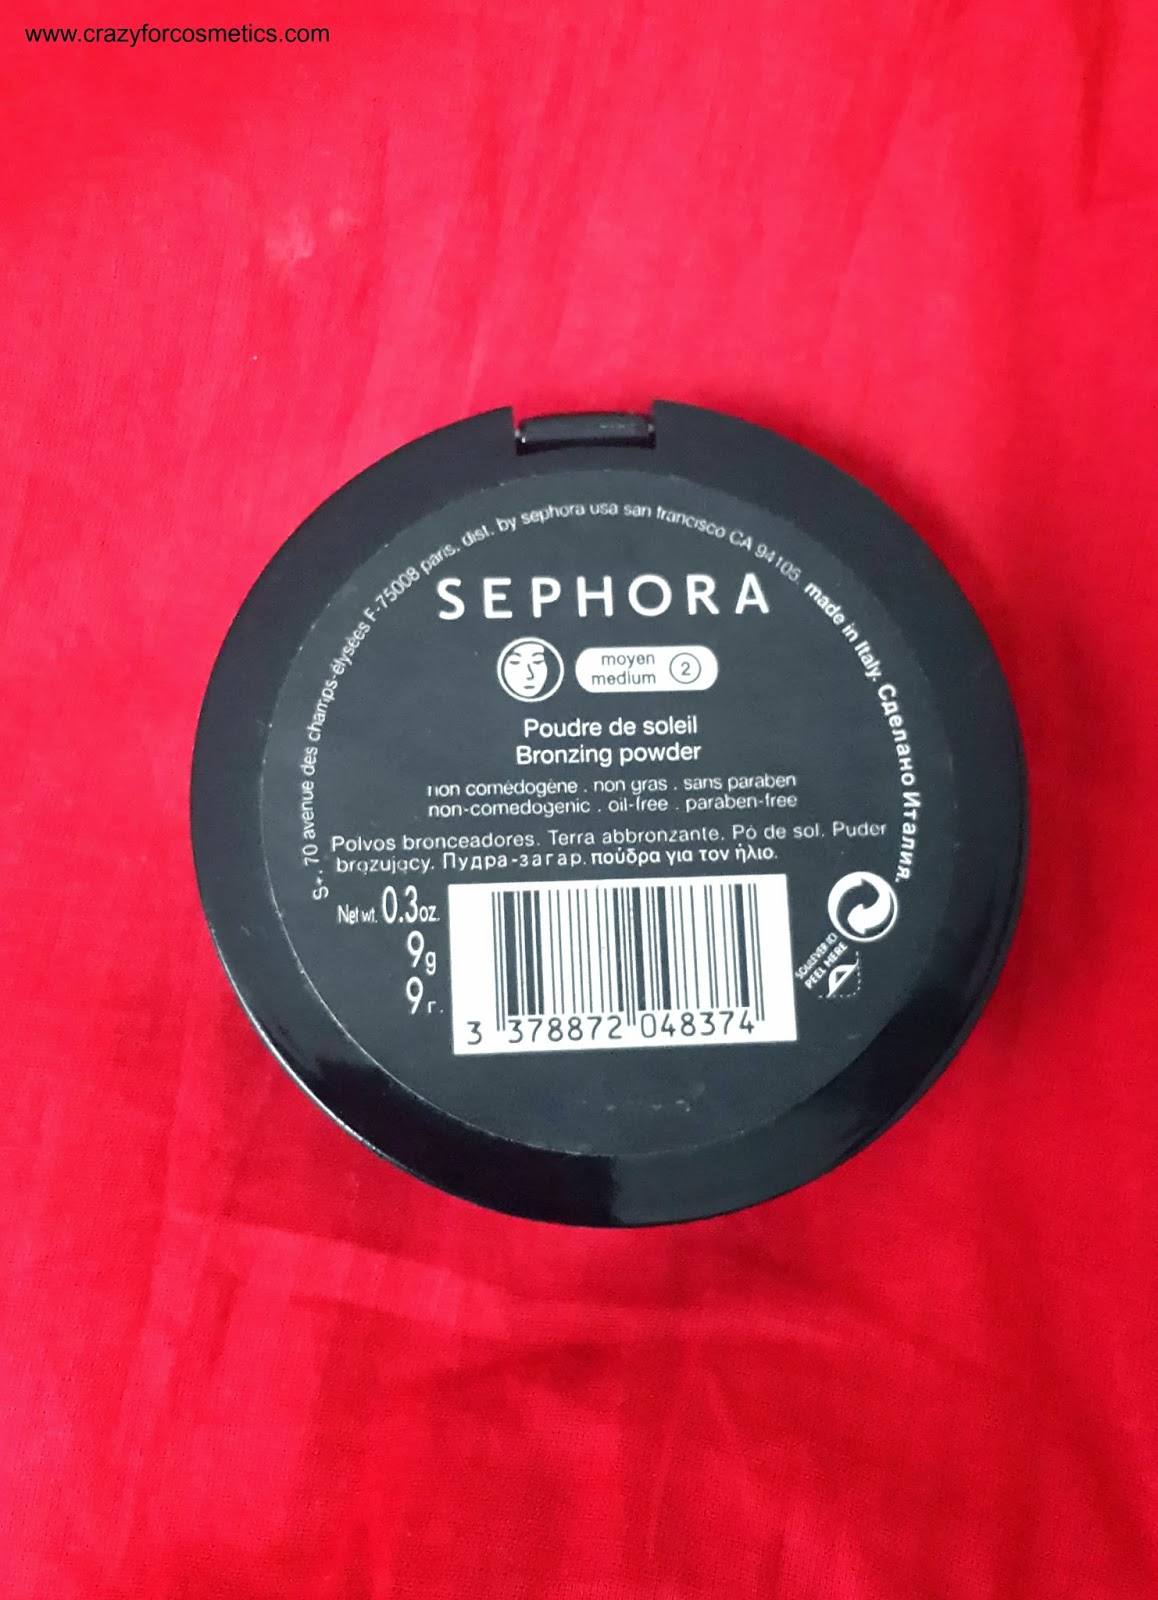 Sephora Bronzing Powder in Shade Medium Review and Swatches- Sephora Bronzer Powder in shade Medium review- Sephora in Paris- Sephora shopping- Sephora cosmetics bronzer powder- Sephora Conntour powder- MAtte bronzer powder